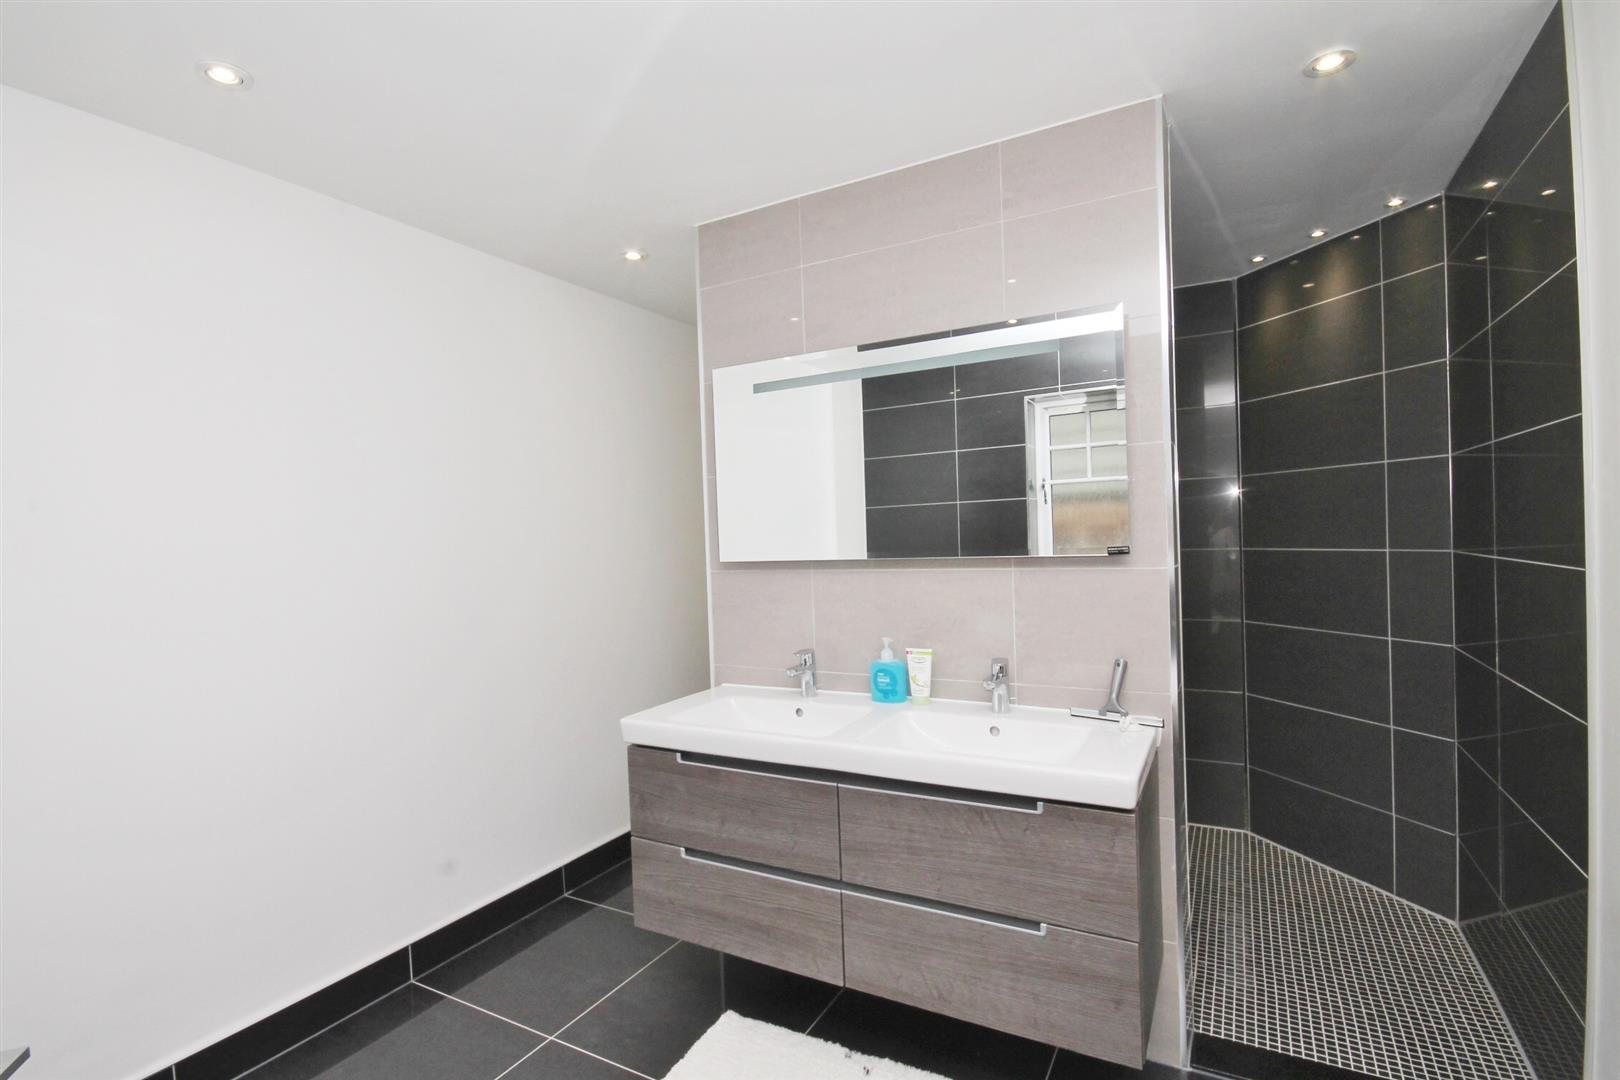 THREE SECTIONED EN-SUITE BATH/SHOWER ROOM